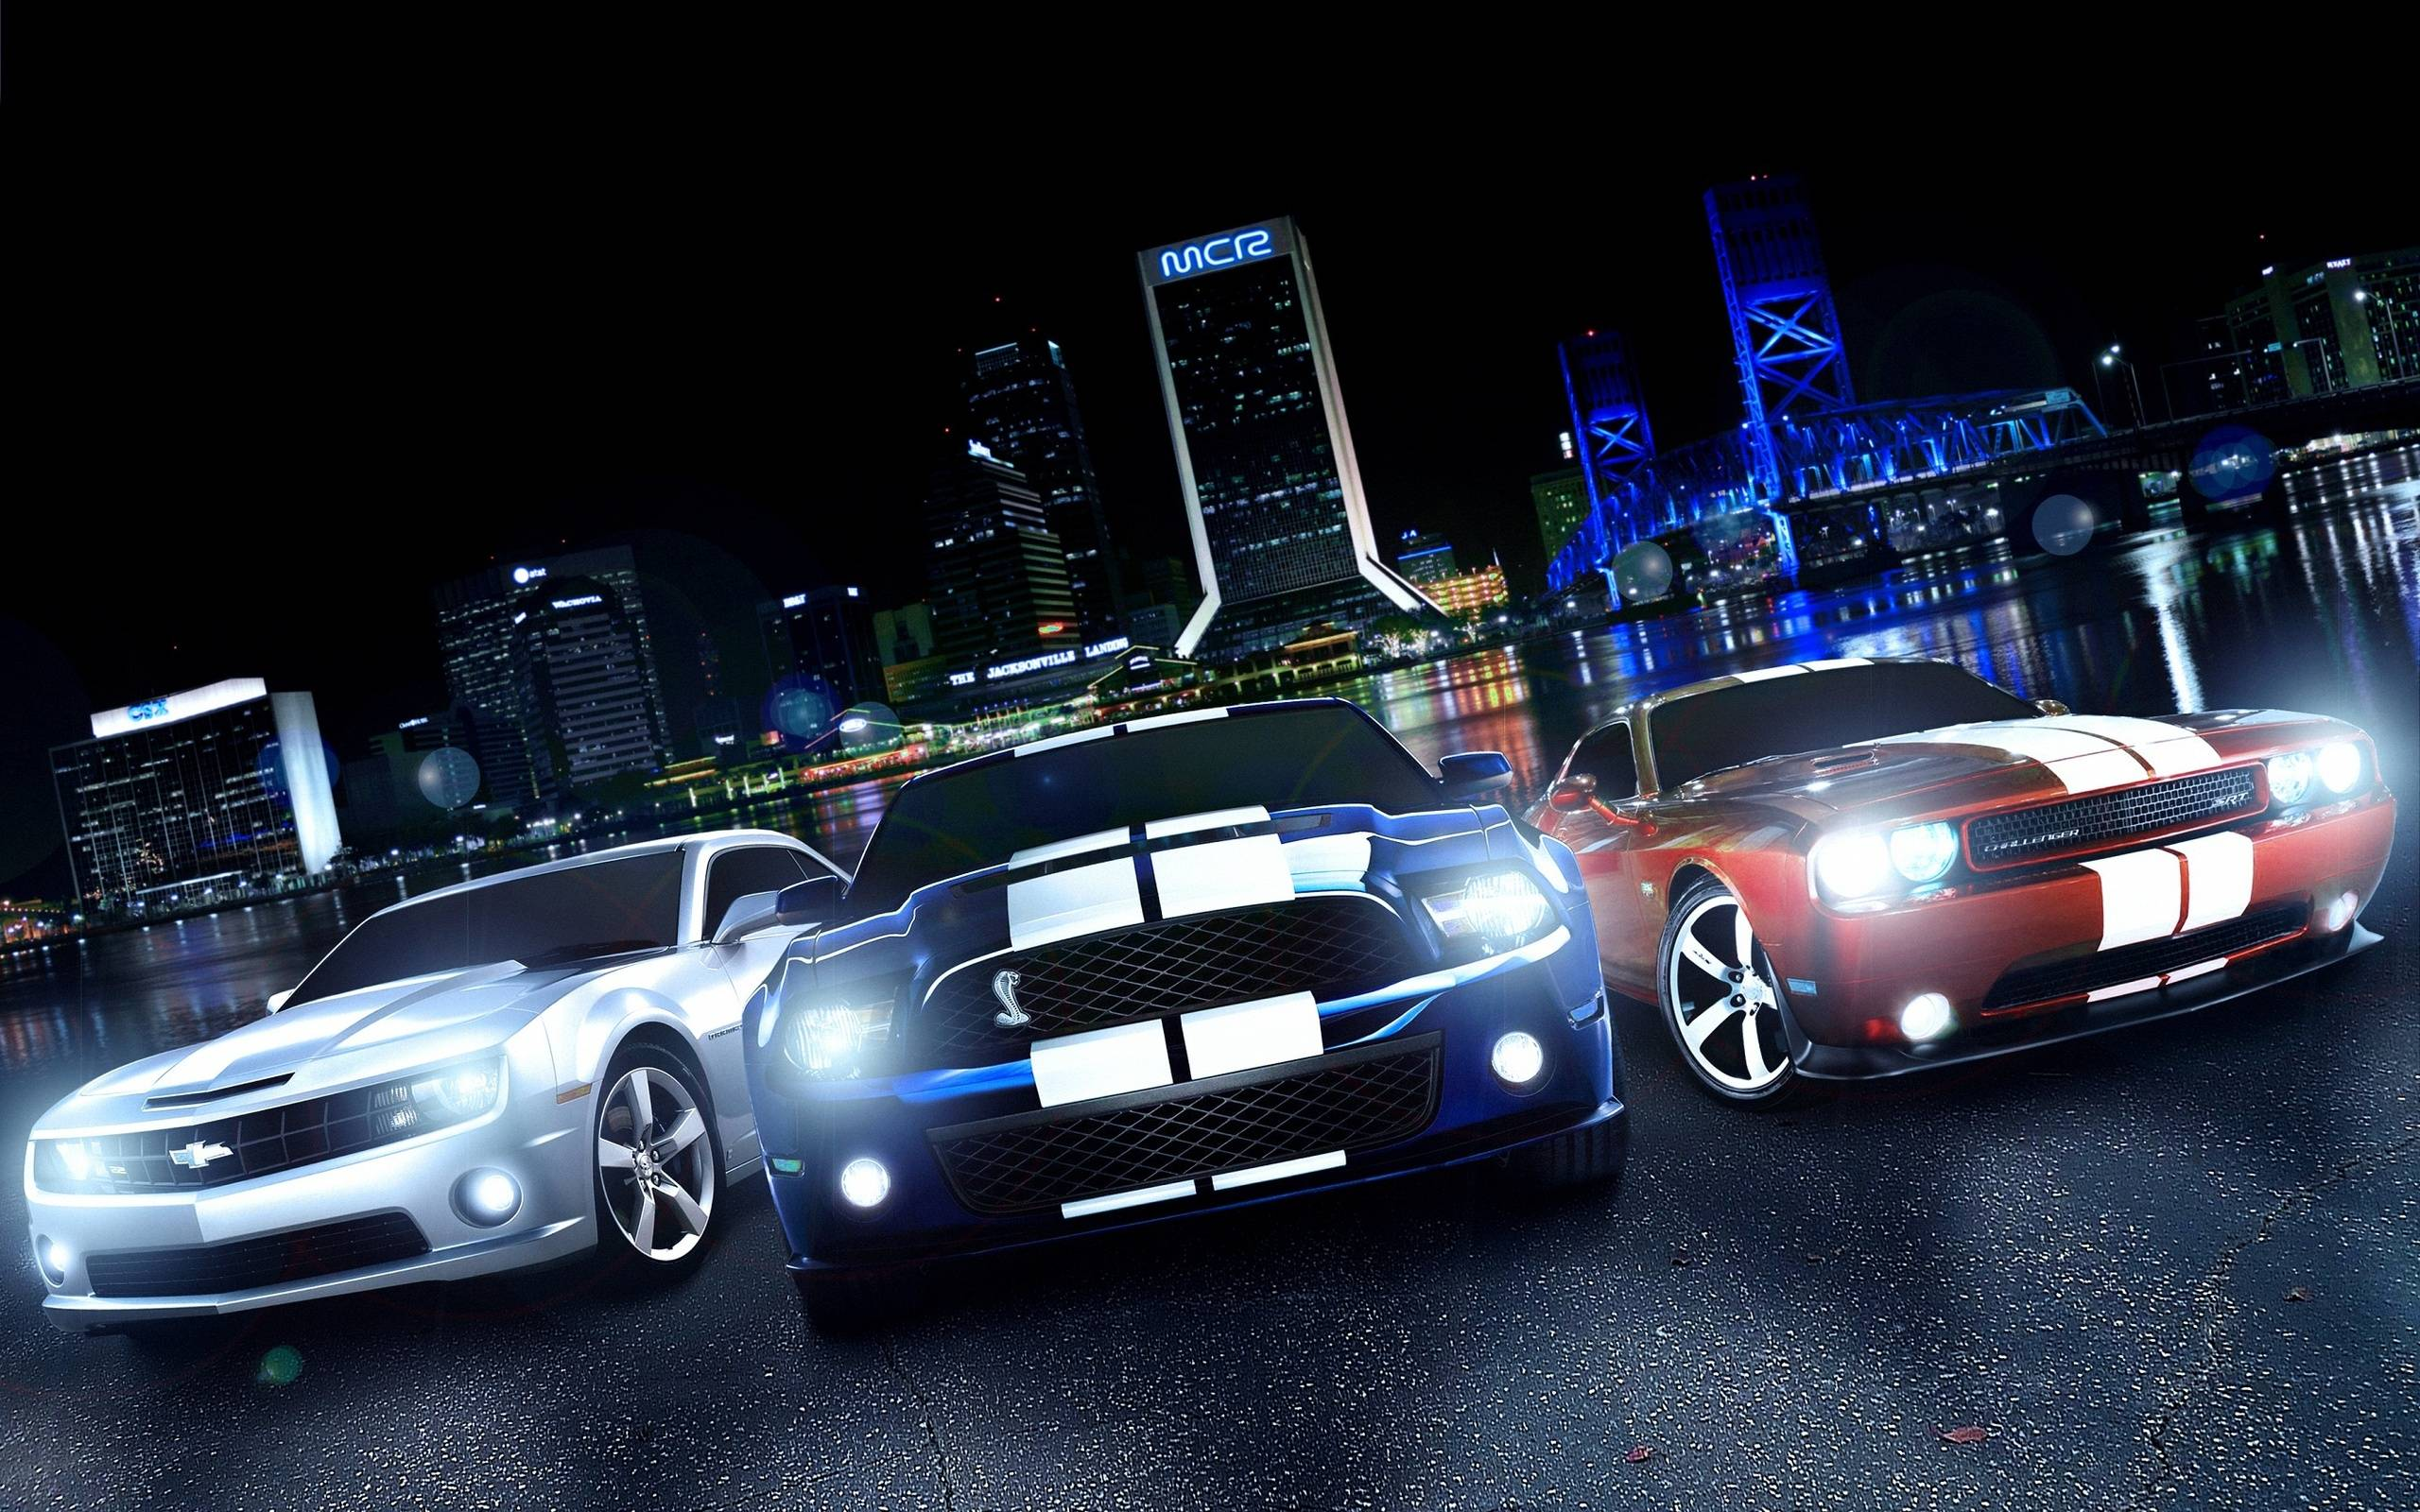 shelby mustang wallpaper - photo #32